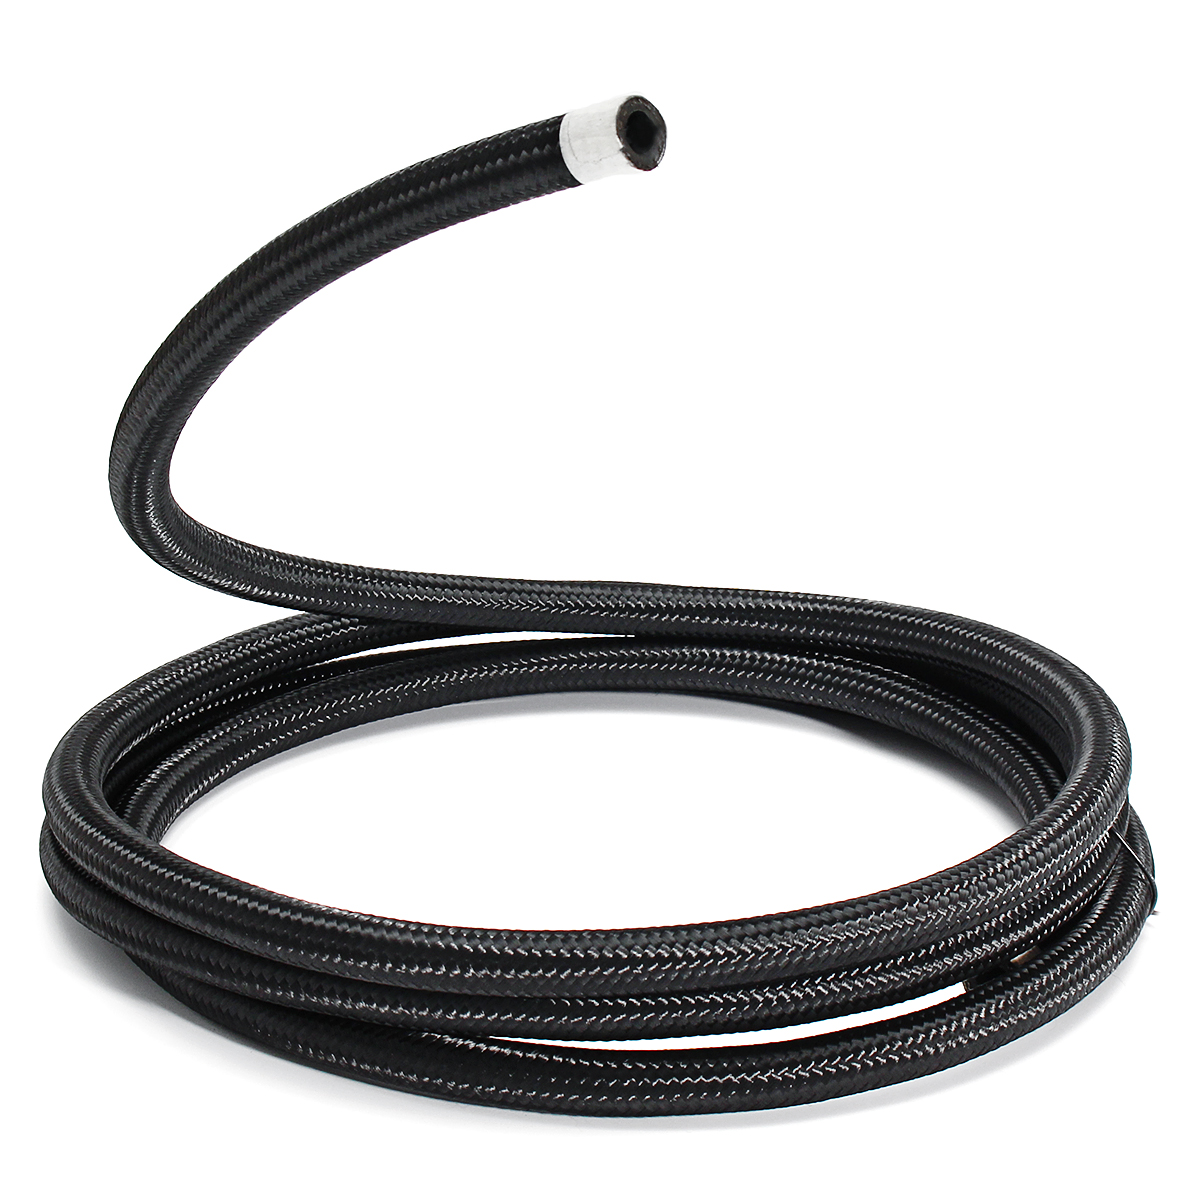 hight resolution of 3m long an6 6an nylon braided hose black stainless steel oil fuel line hose